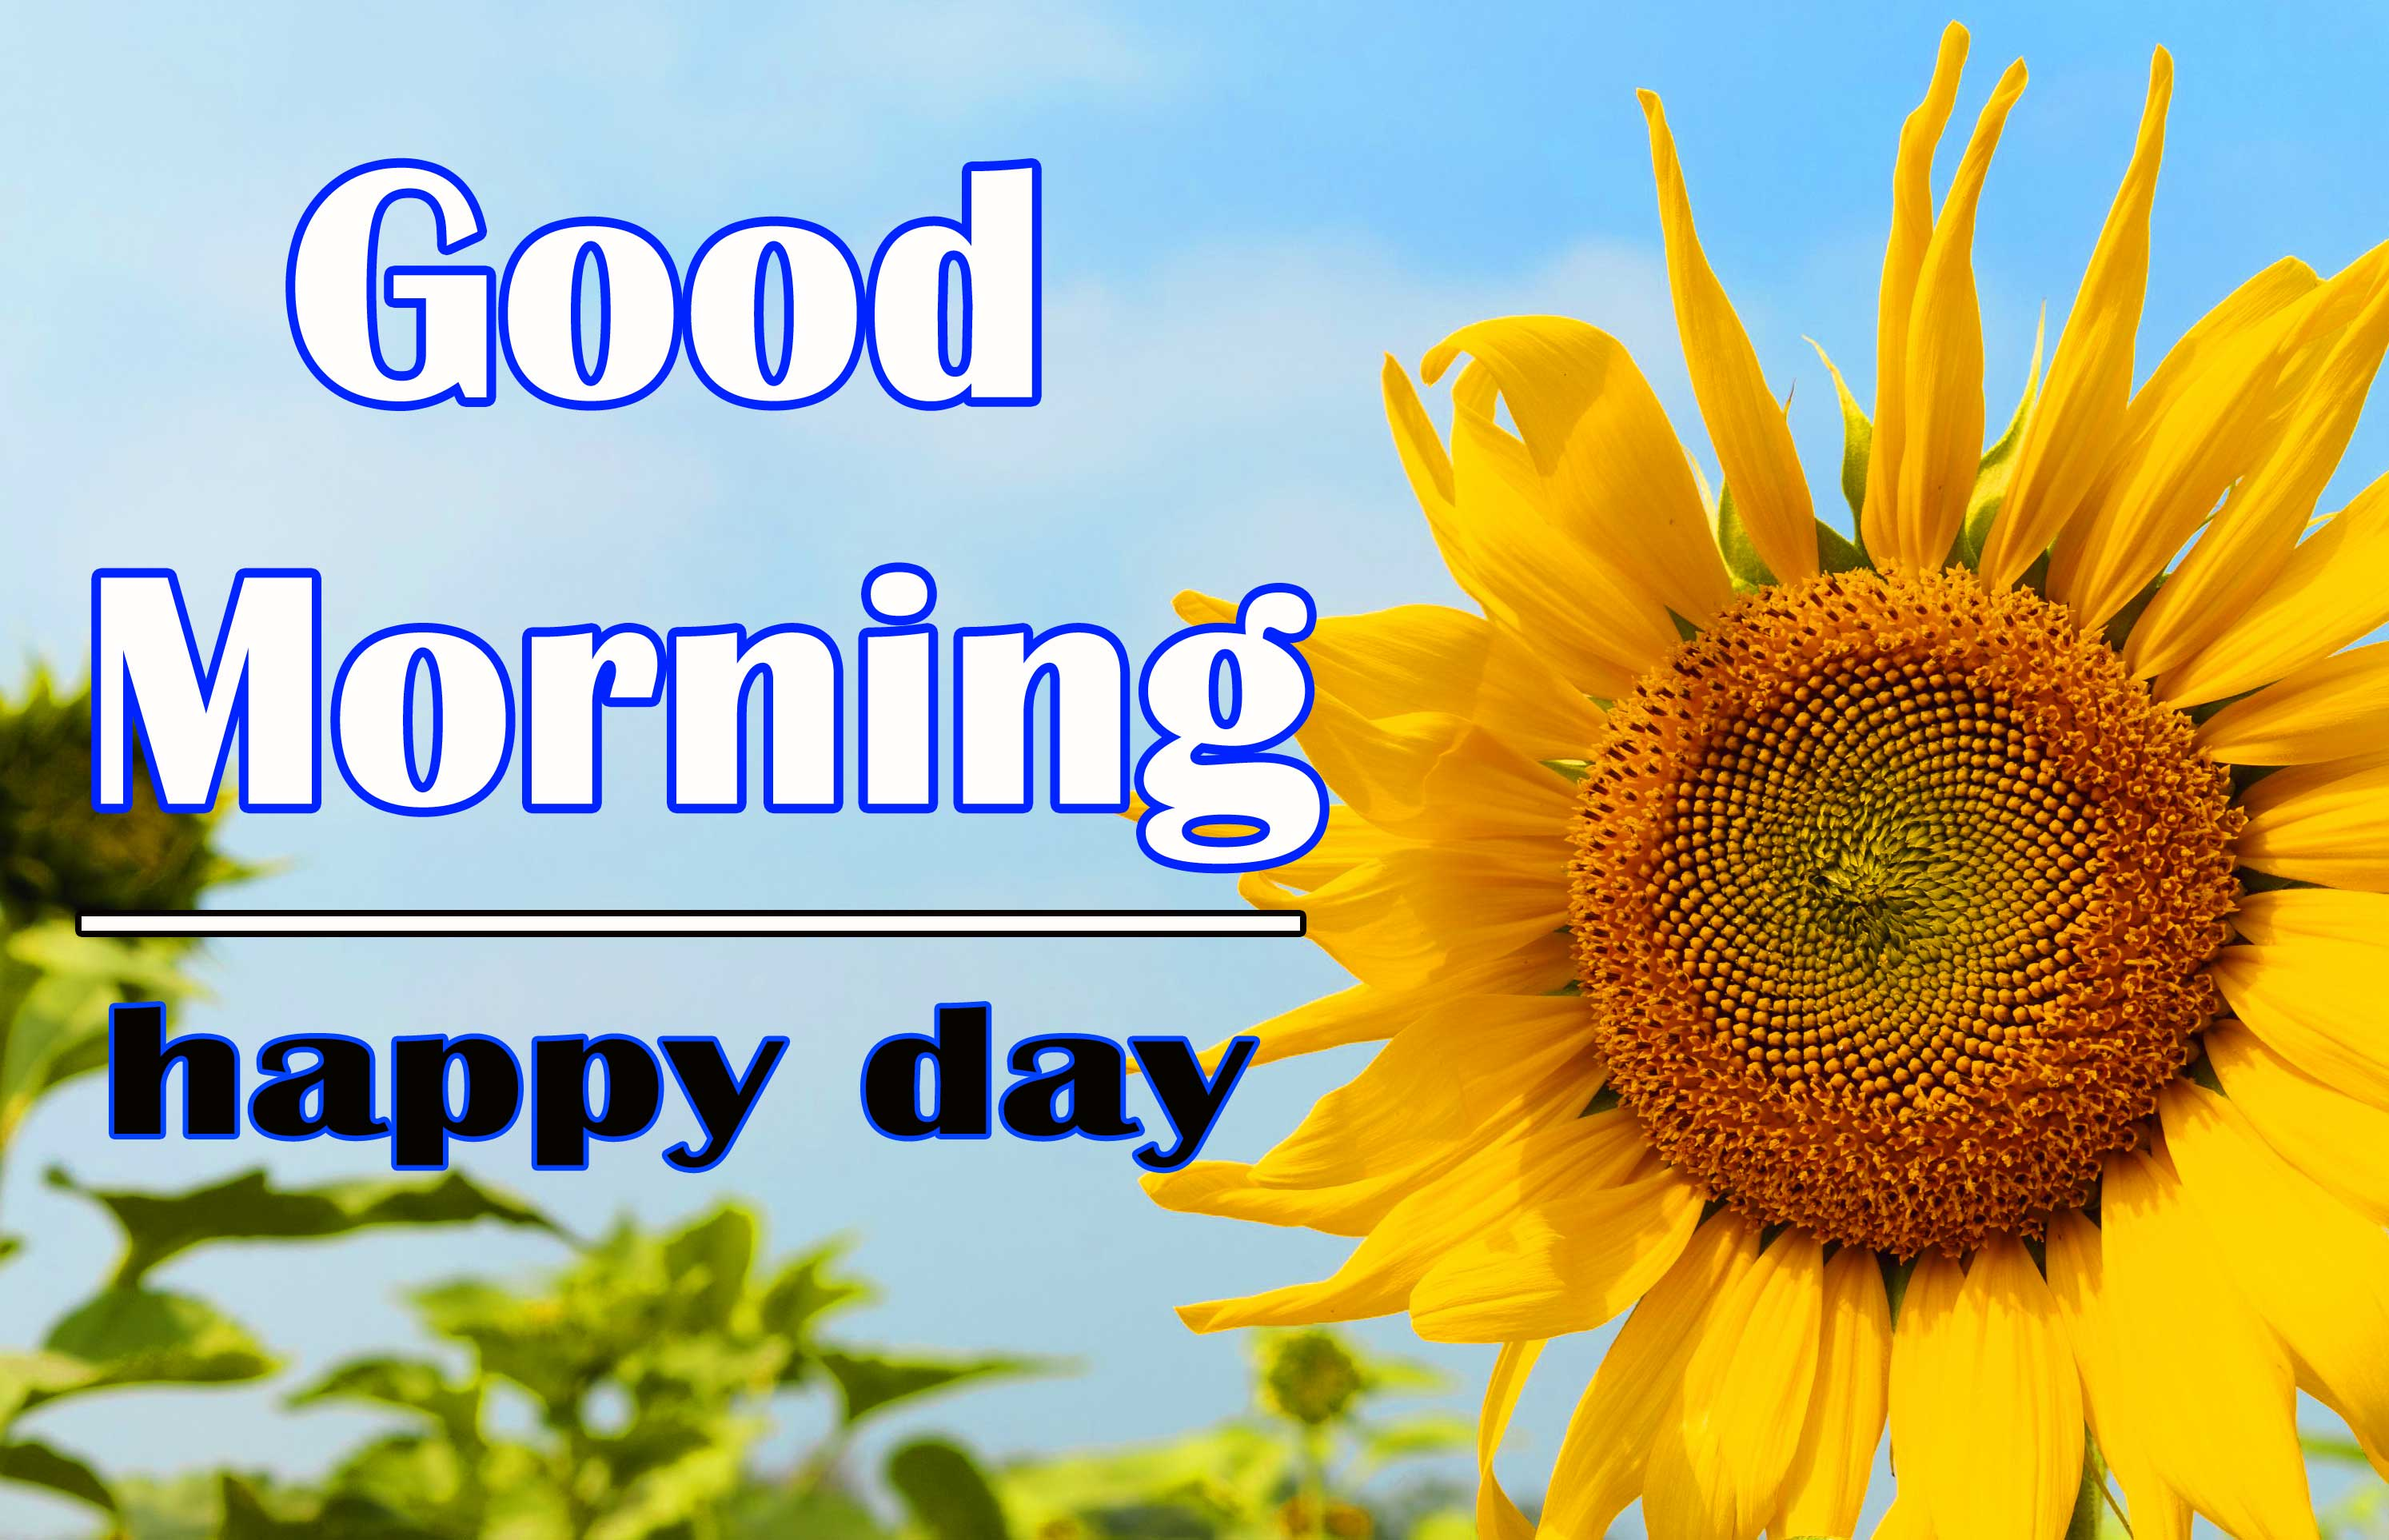 Good Morning Sunflower Images Pics for Facebook